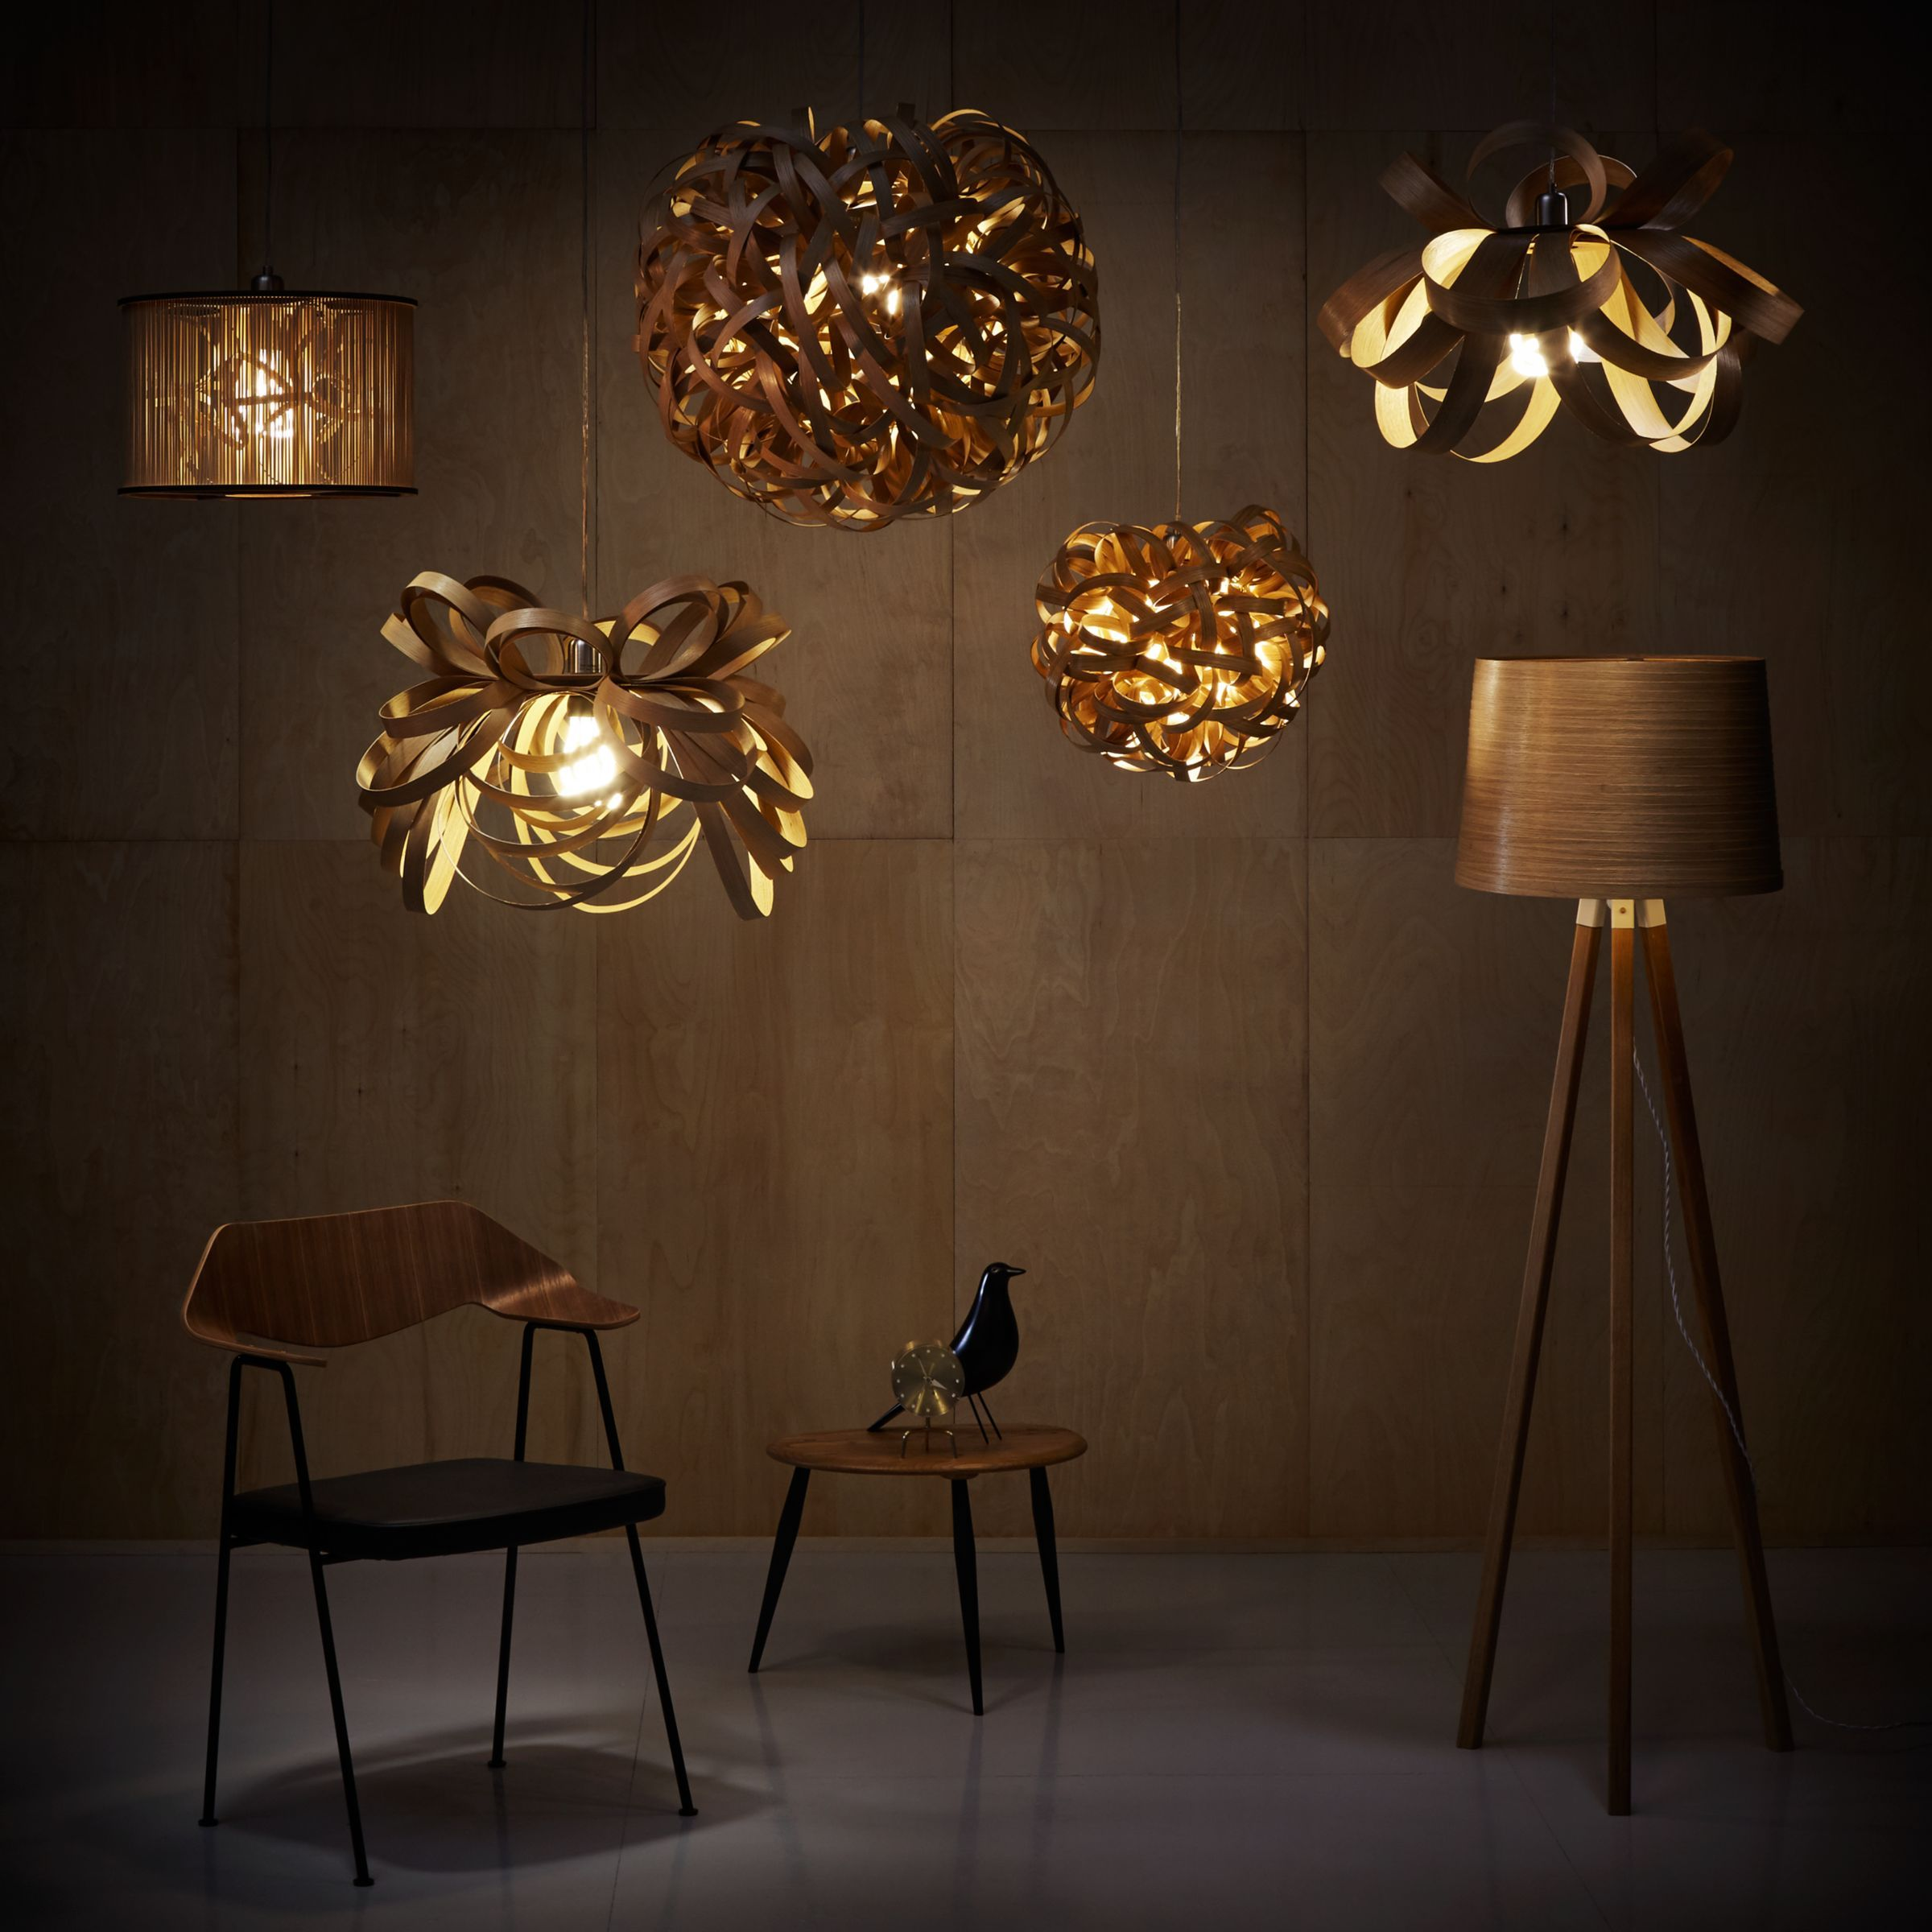 Tom Raffield Skipper Pendant Light 62cm Oak In 2020 Tom Raffield Pendant Light Cage Pendant Light